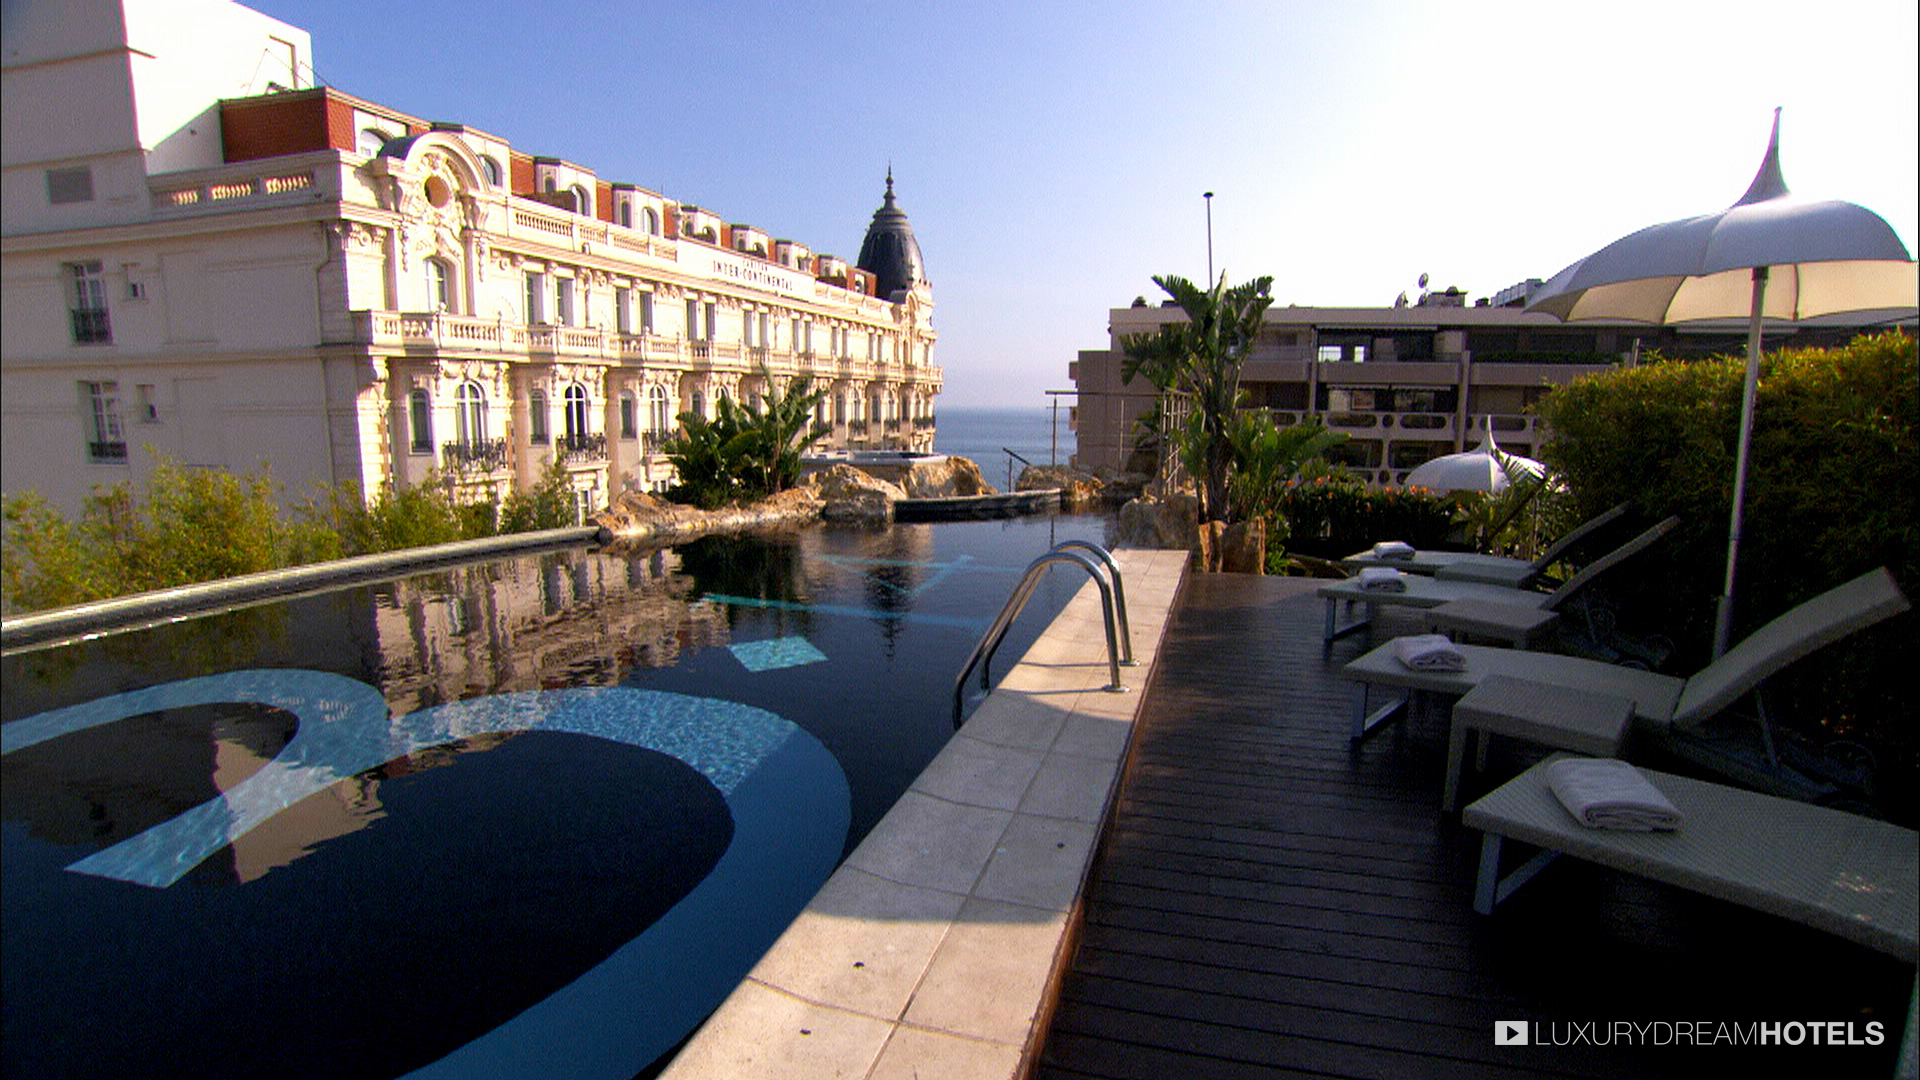 Top Luxury hotel, 3.14 Hotel, Cannes, France - Luxury Dream Hotels SO12